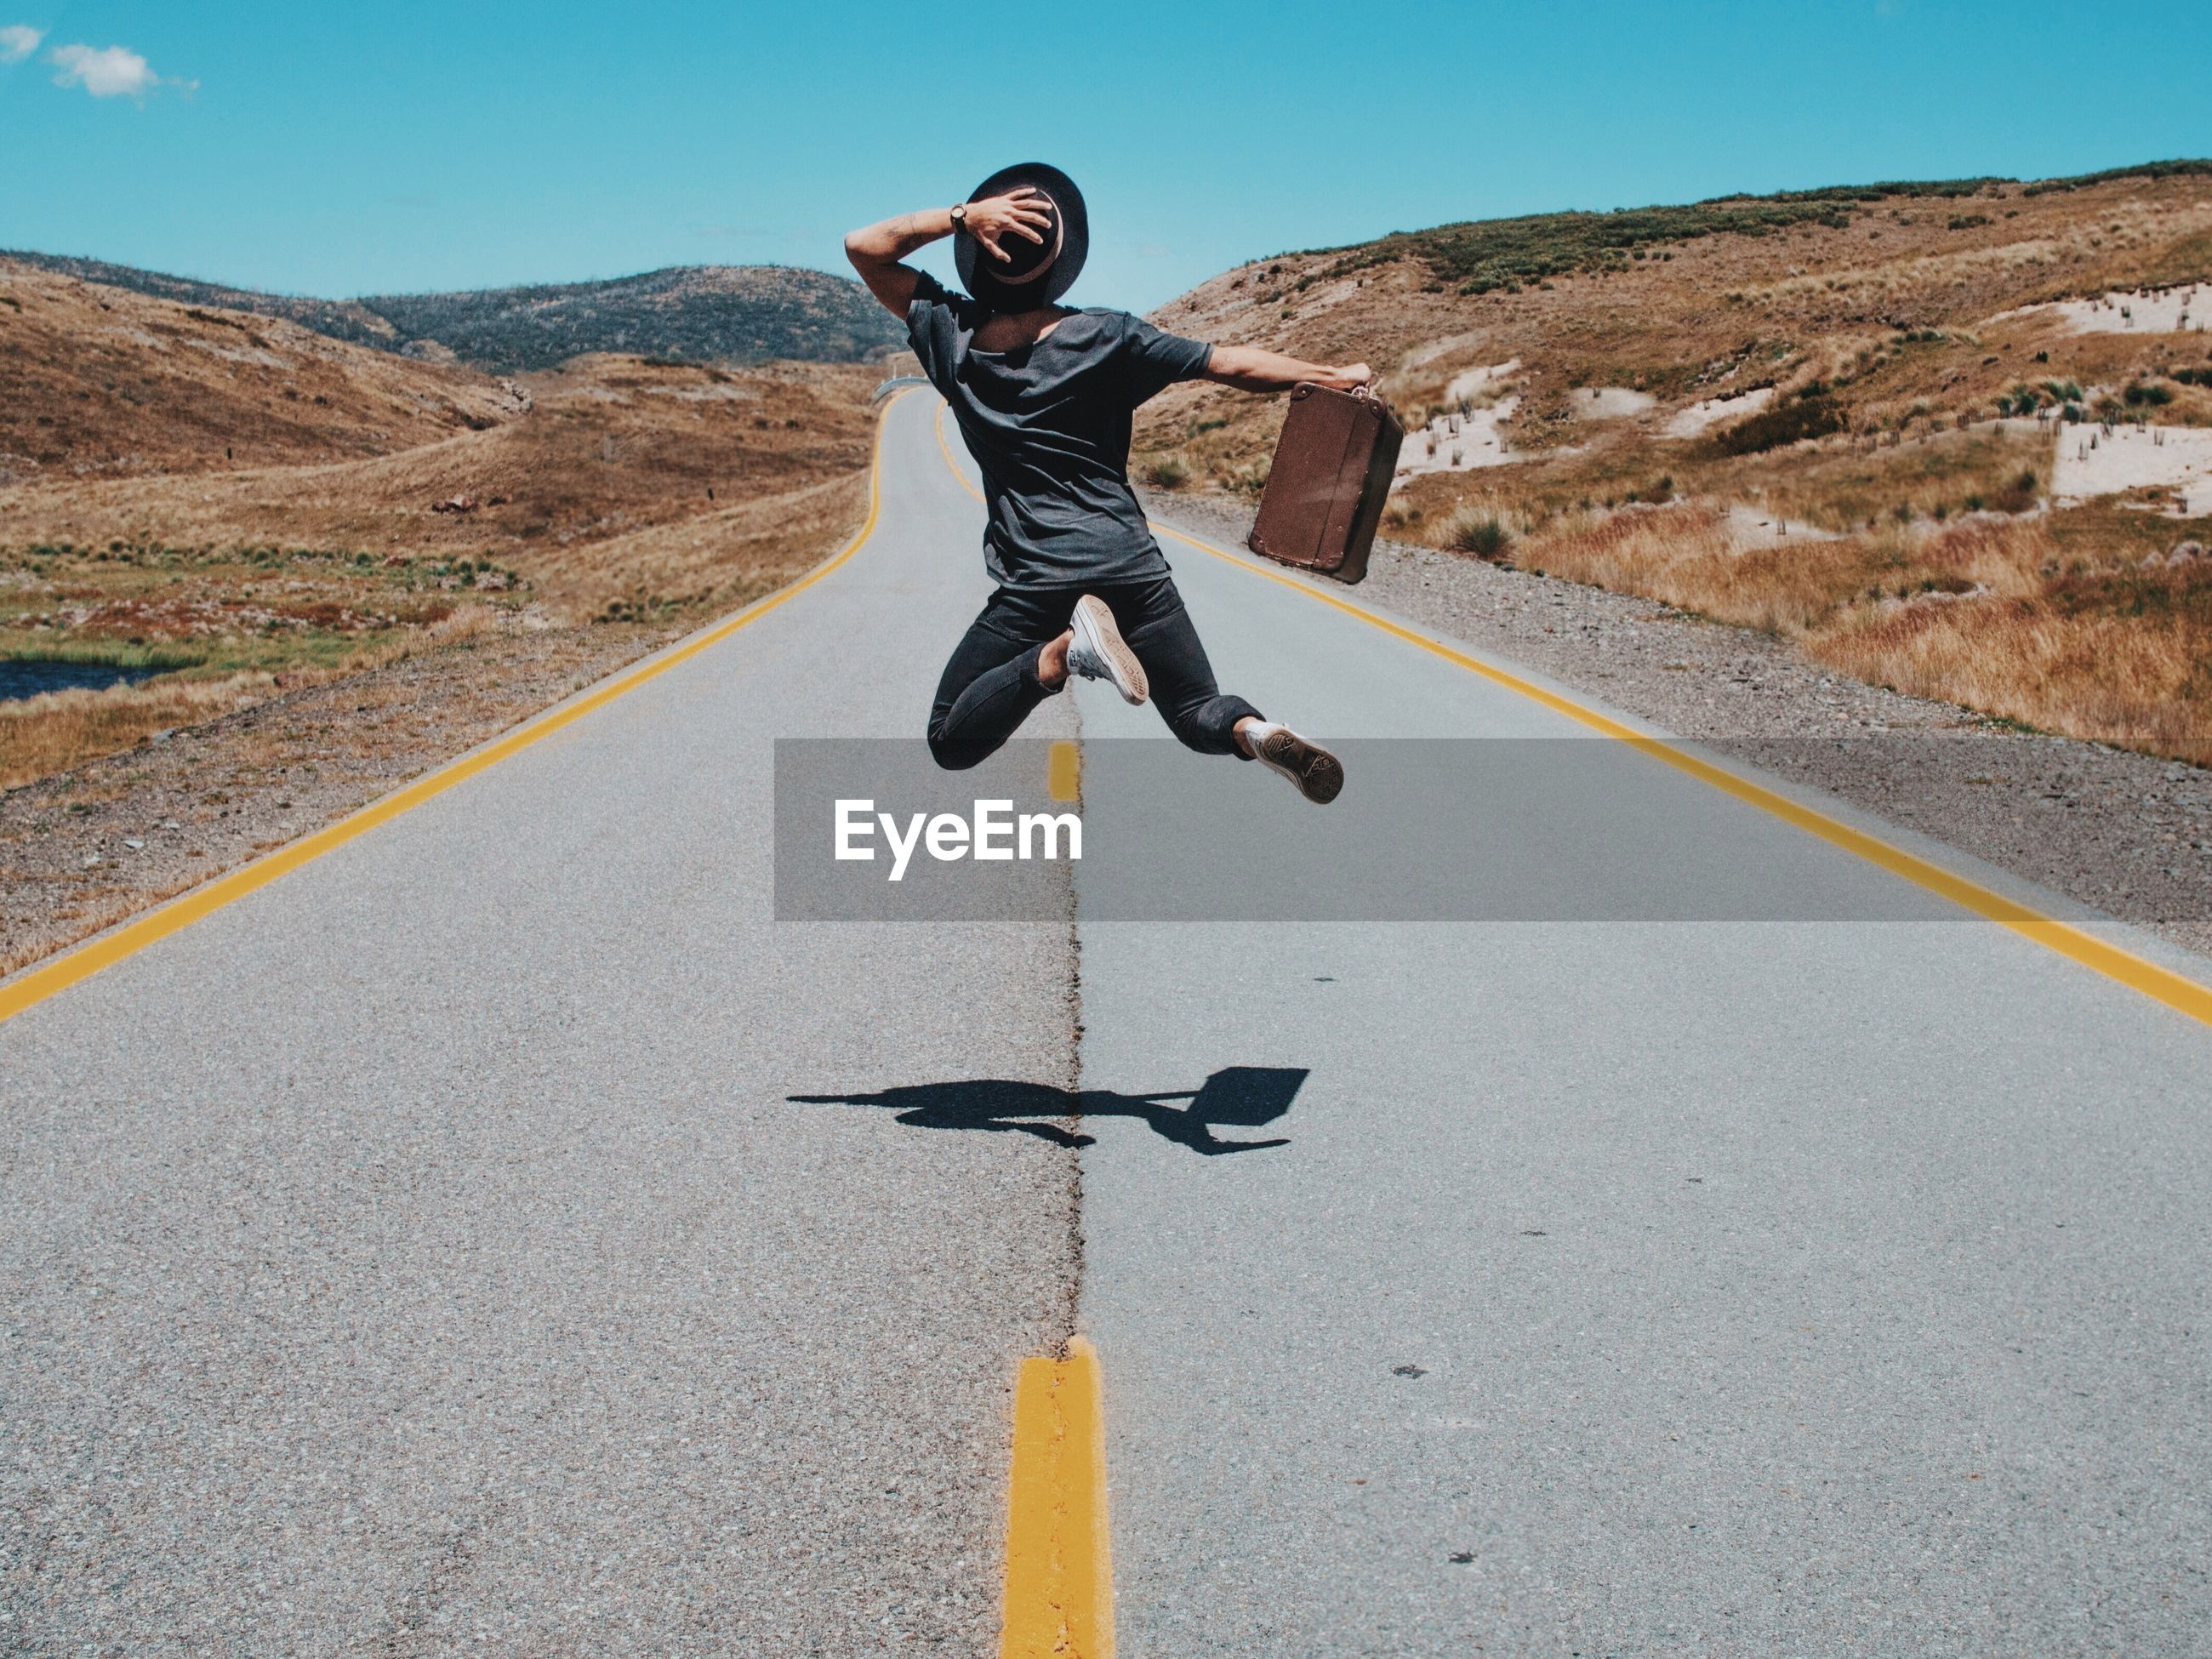 Rear view of man jumping on country road against sky